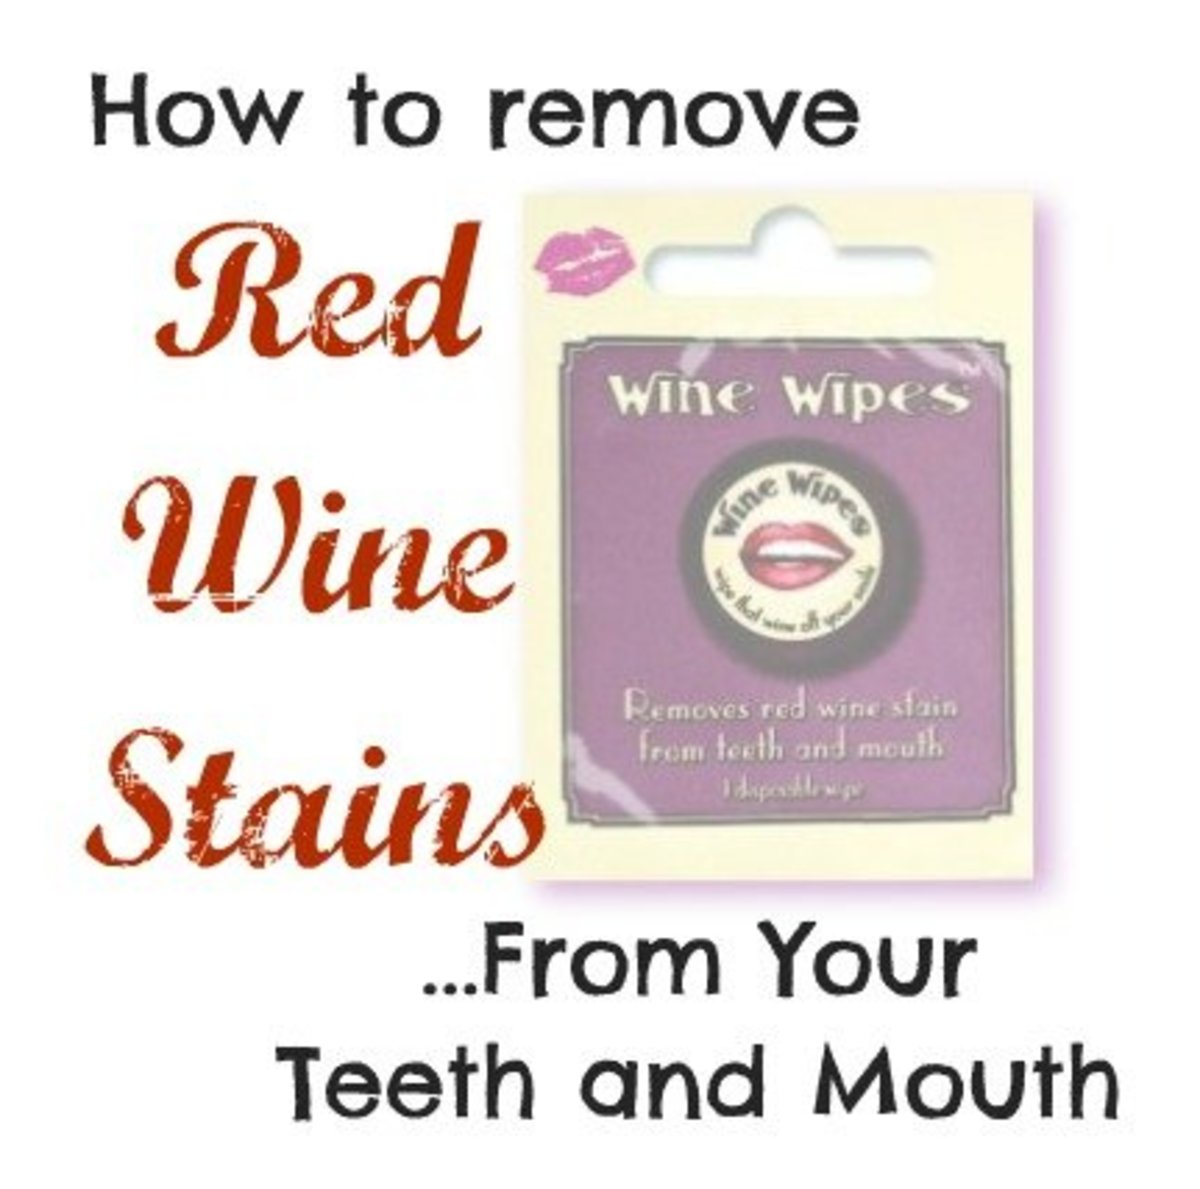 How To Remove Red Wine Stains From Lips, Teeth and Your Tongue: Wine Wipes